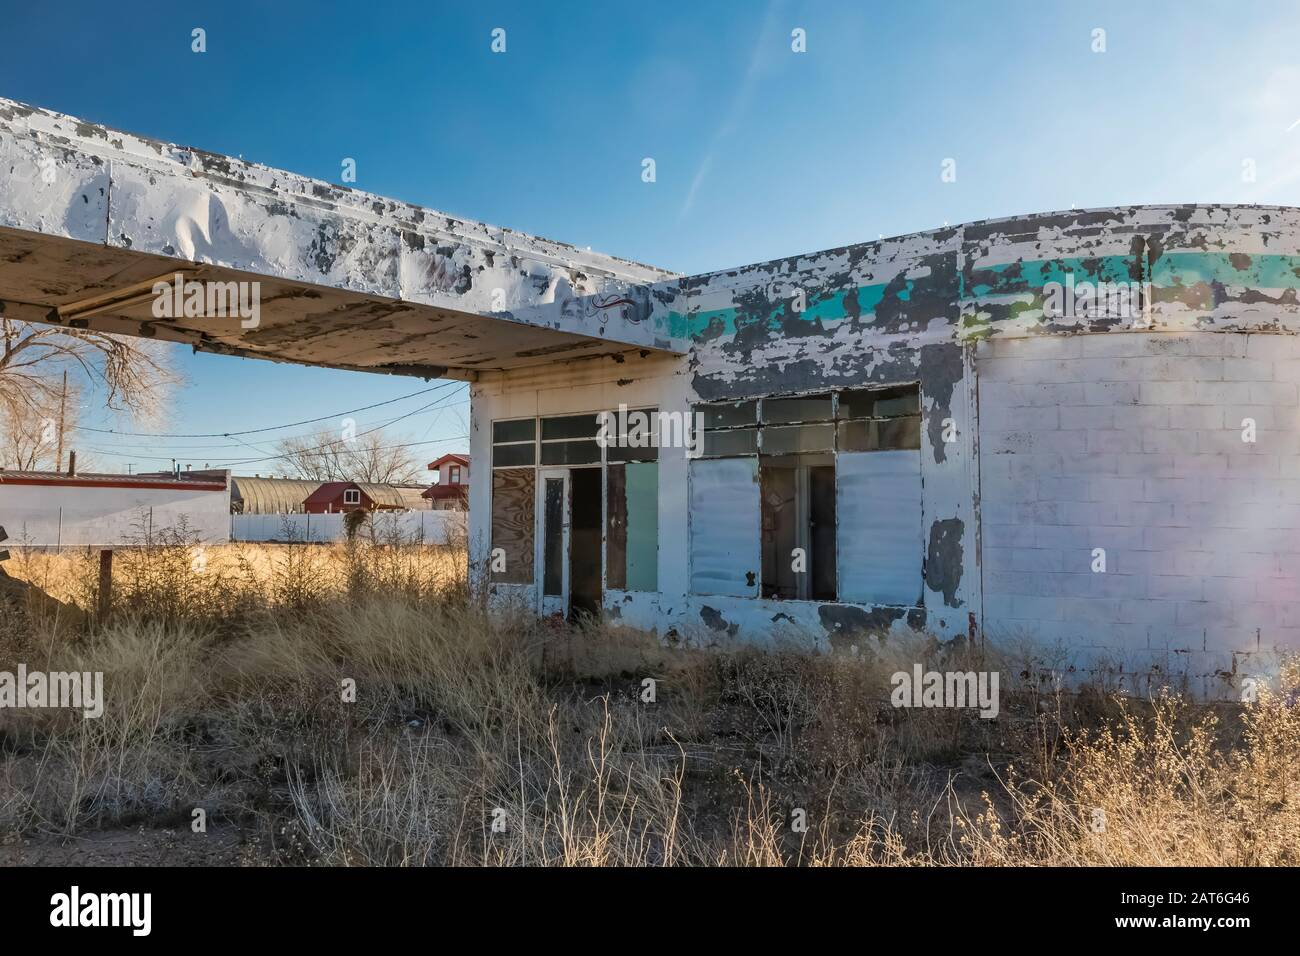 Abandoned Gas Station Along Historic Route 66 In Holbrook Arizona Usa No Property Release Available For Editorial Licensing Only Stock Photo Alamy